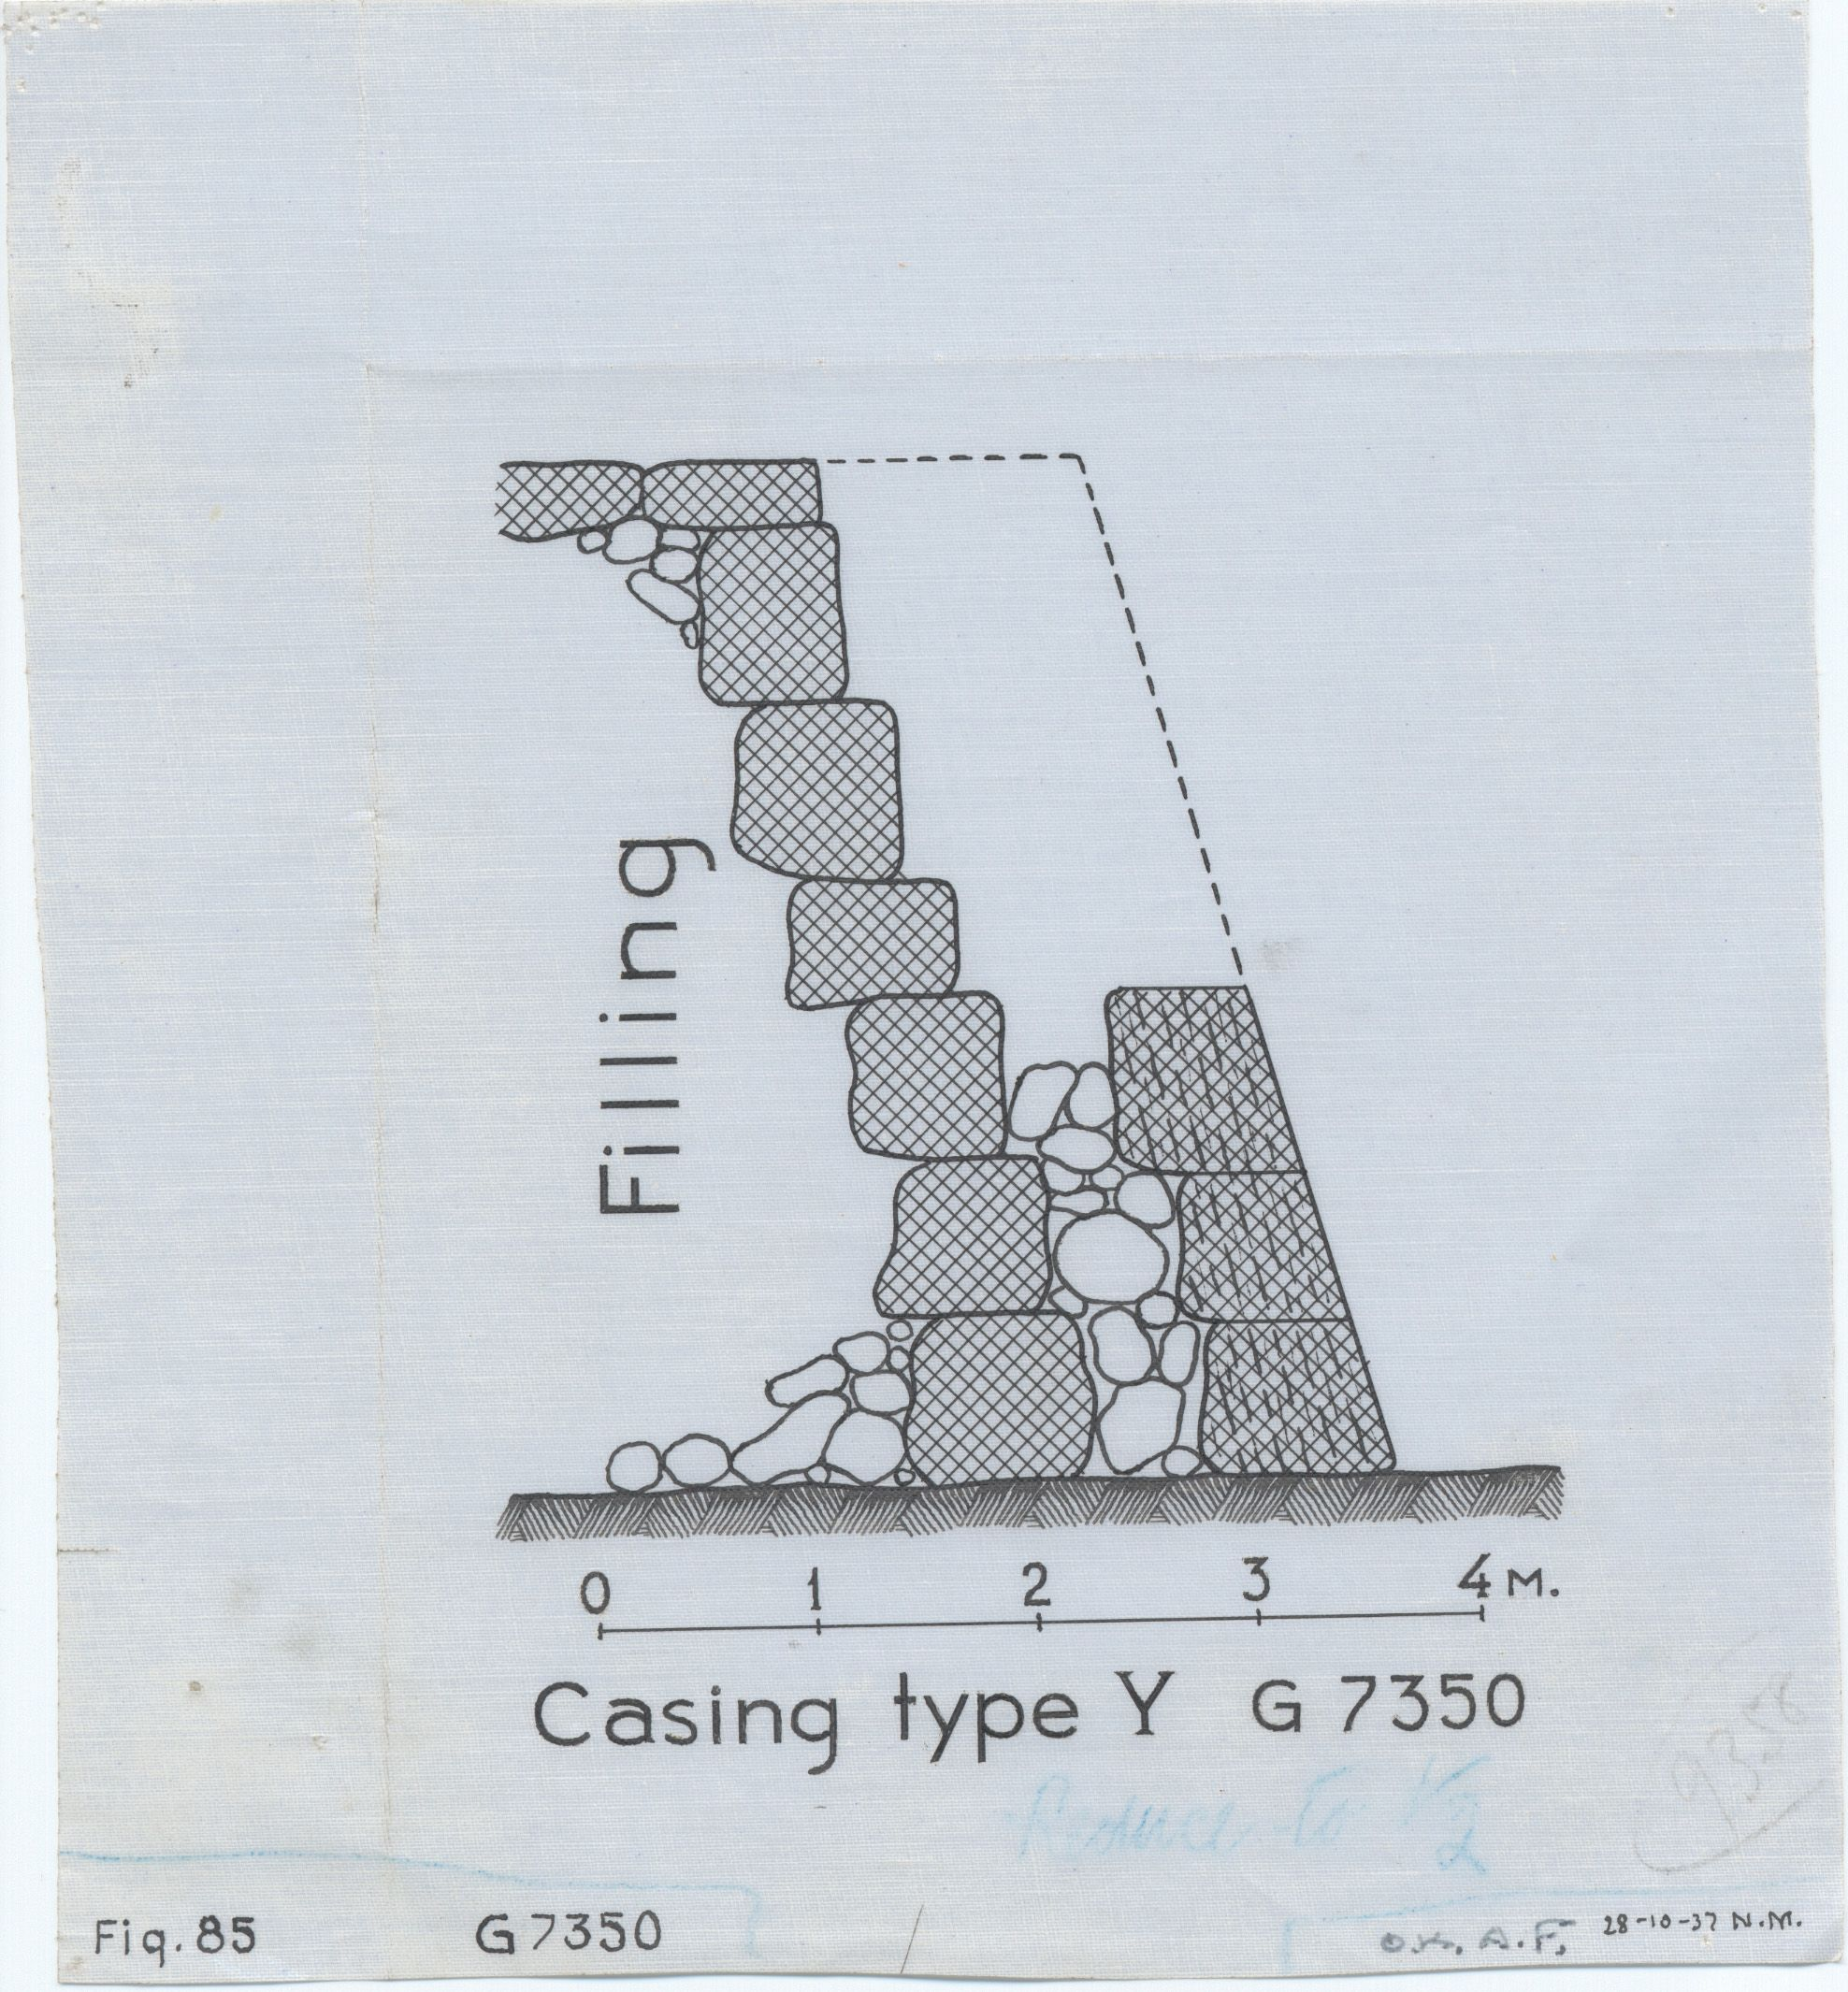 Maps and plans: G 7350, Section of casing type Y